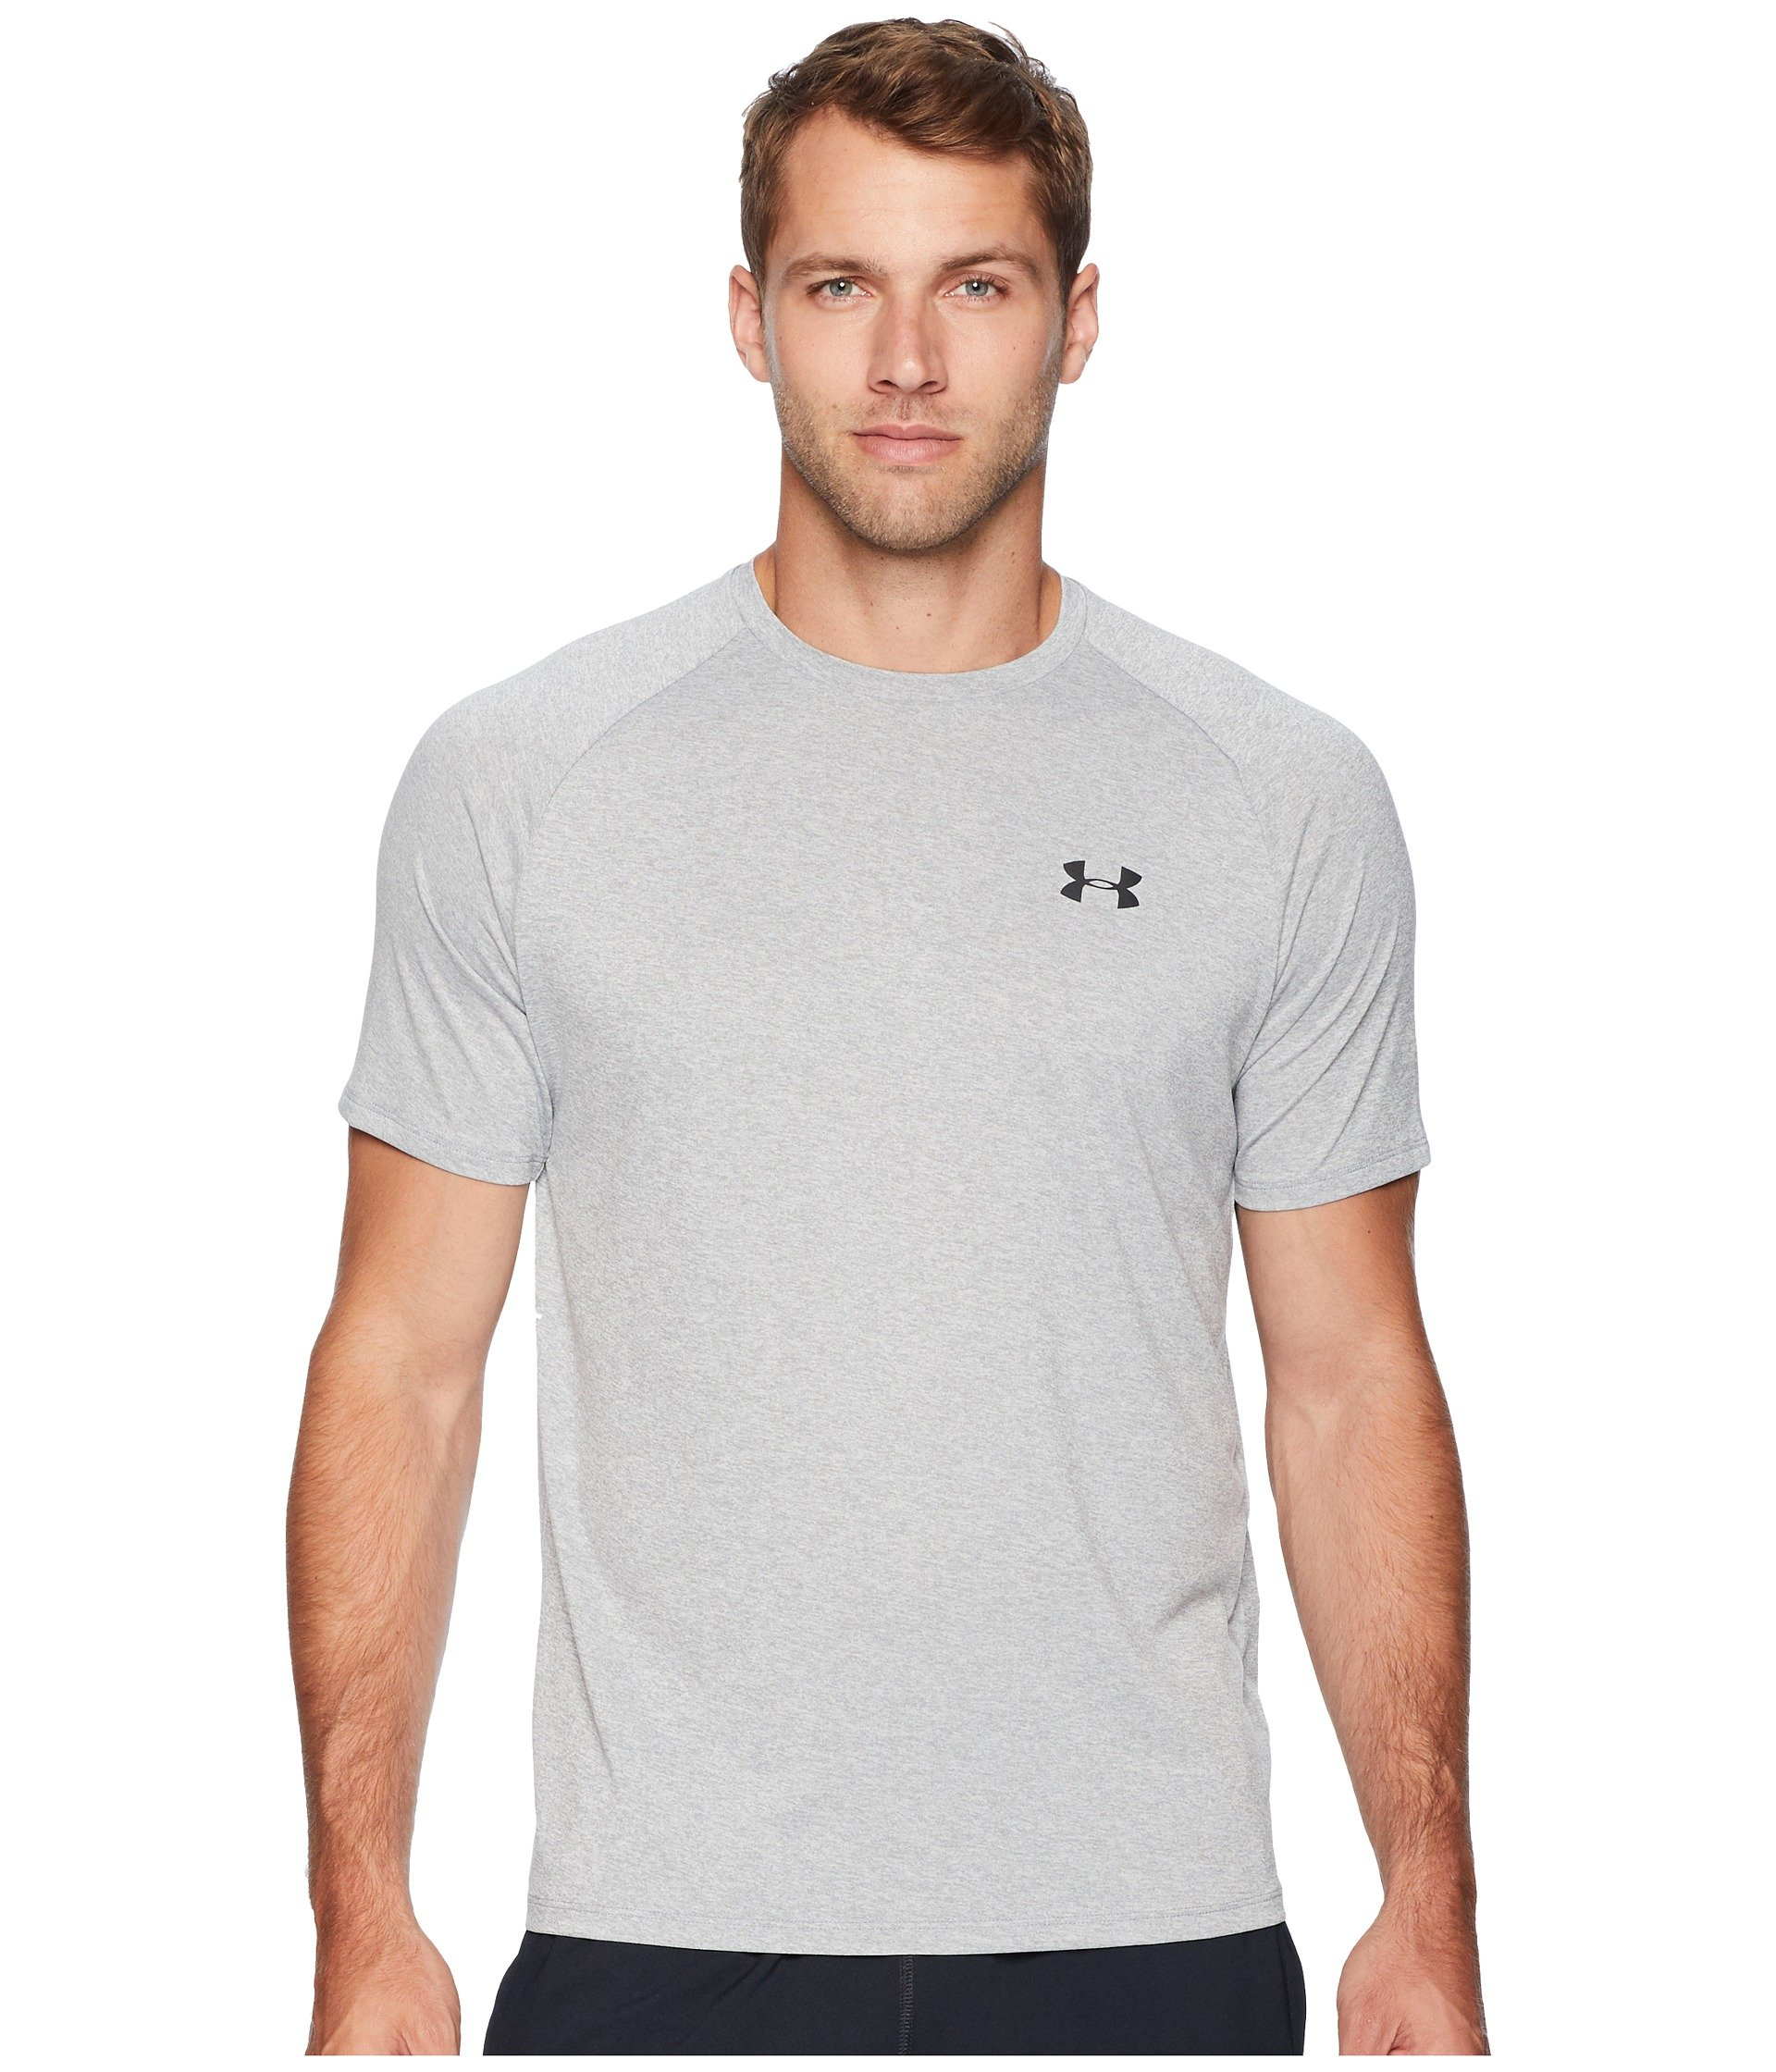 Under Armour Men's UA Tech Short Sleeve Tee Steel Light Heather/Black 4XT by Under Armour